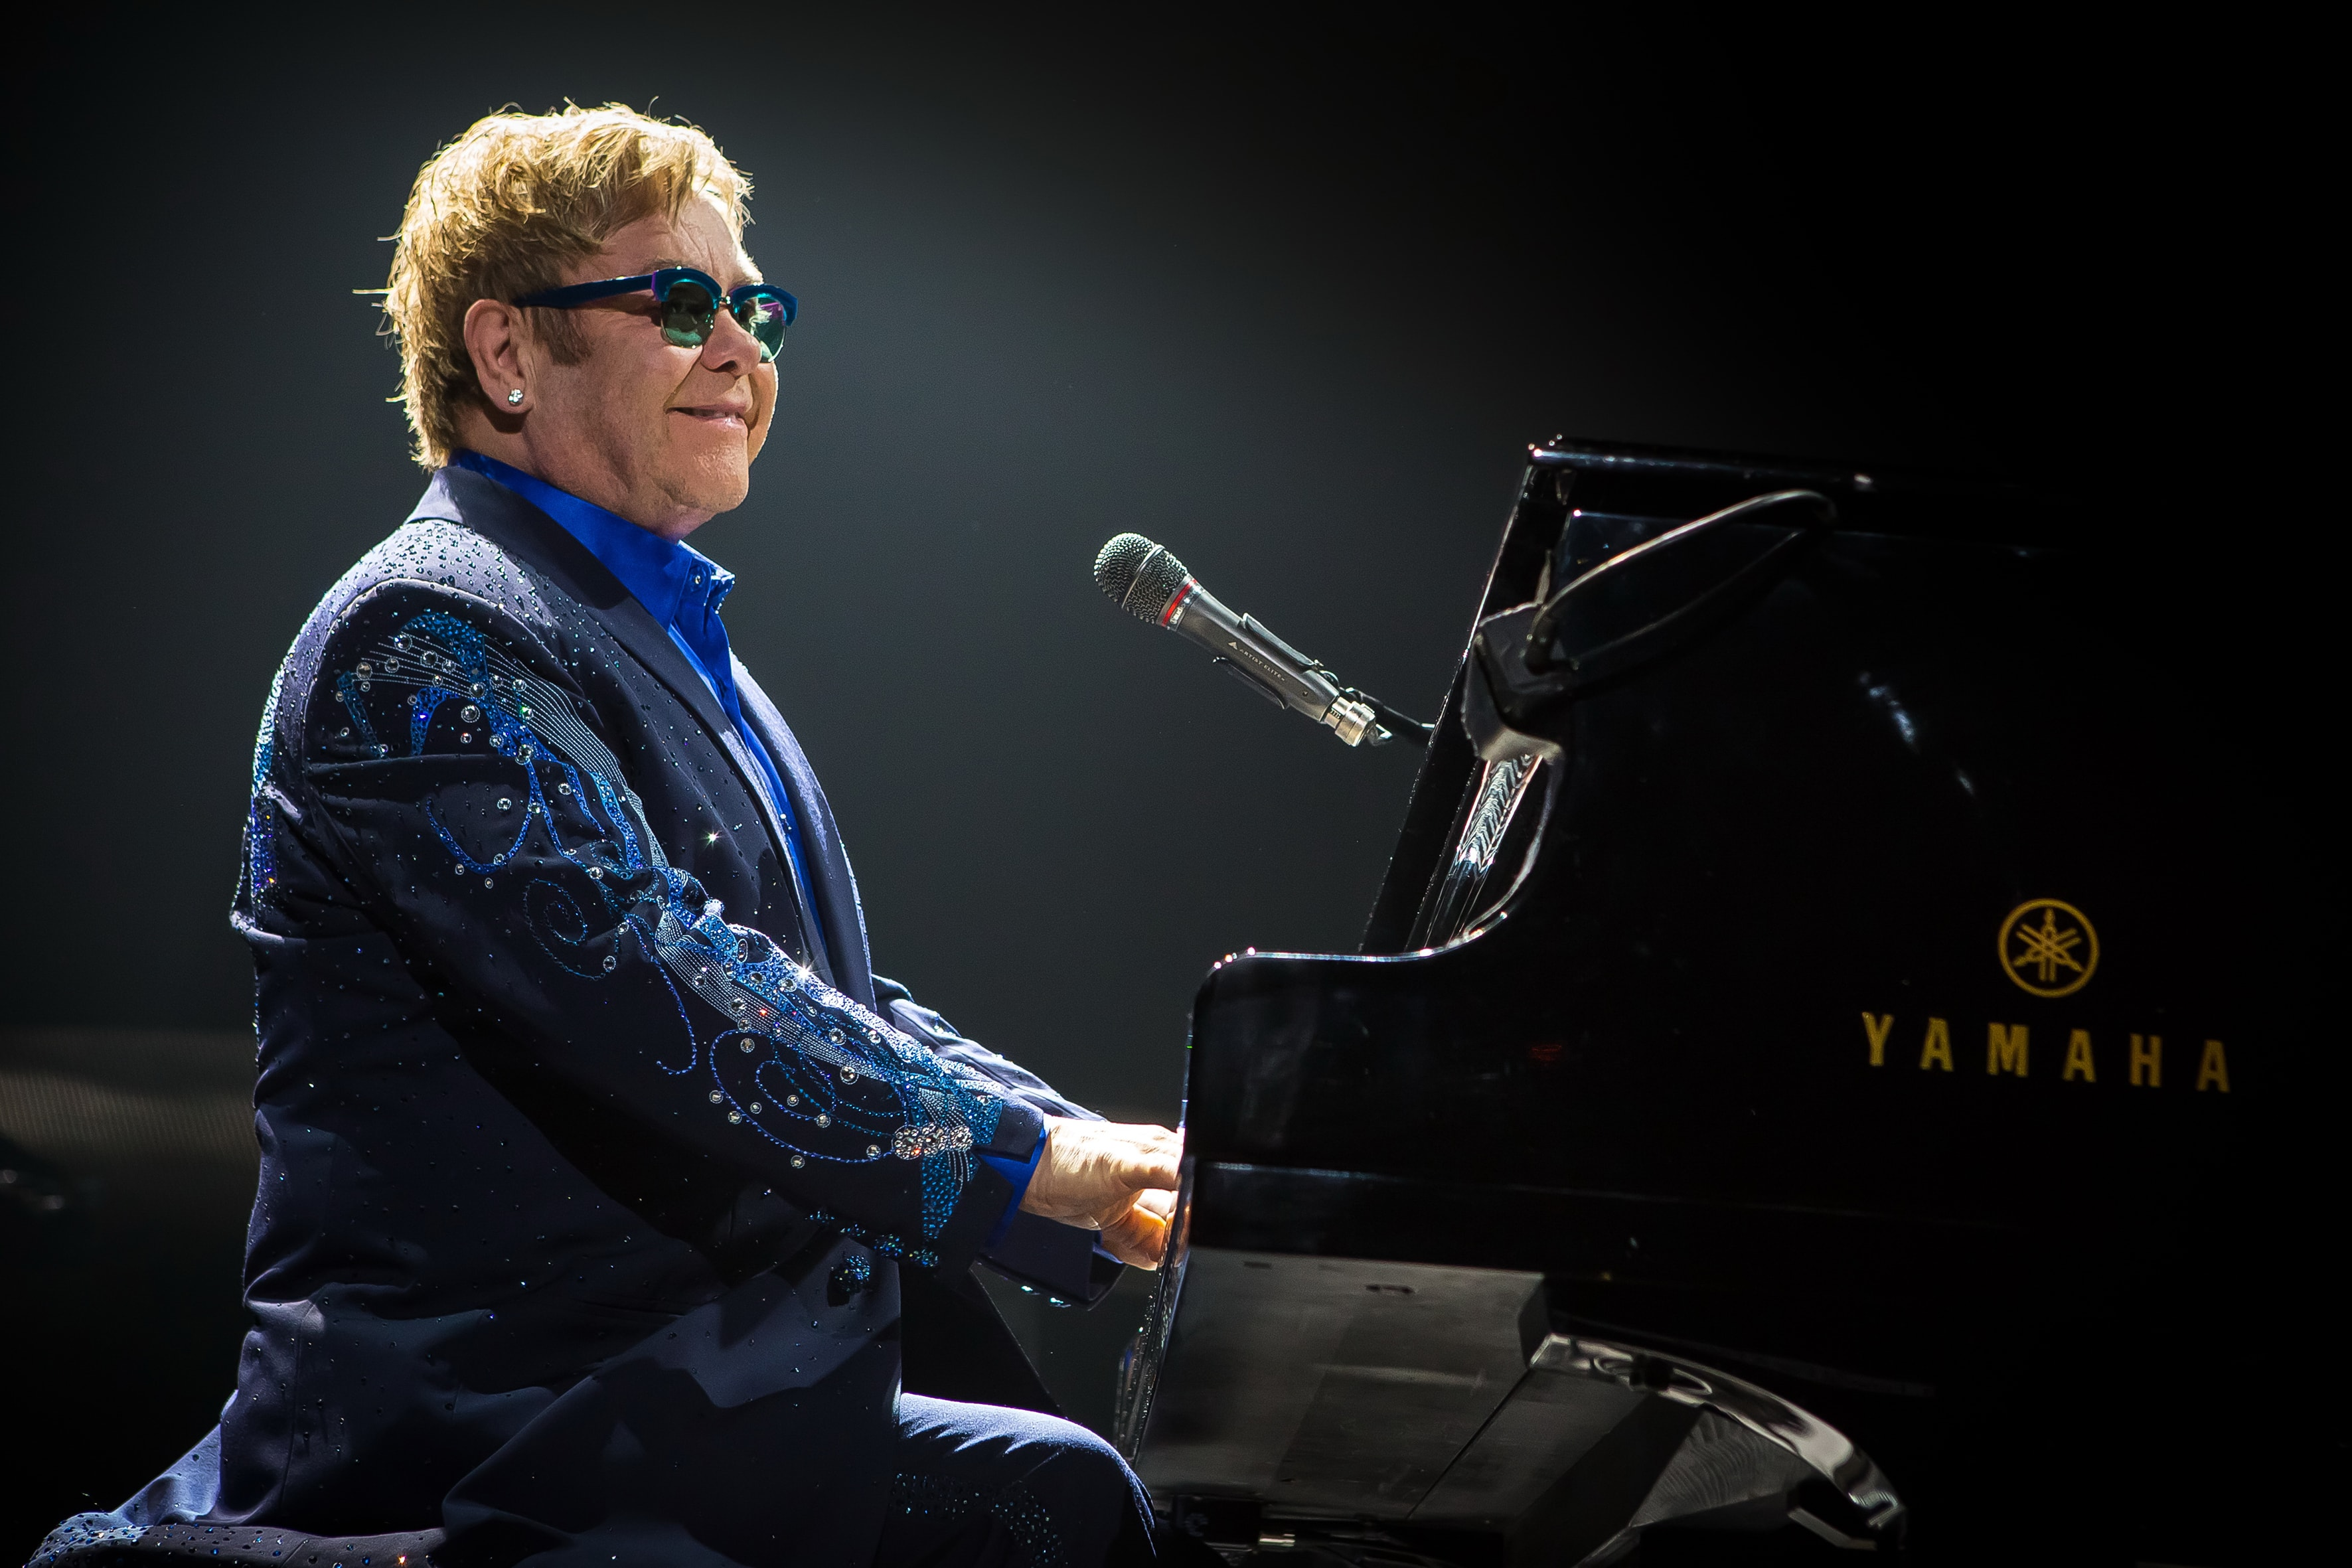 Elton John Desktop Wallpaper 695 3543x2362 px PickyWallpaperscom 3543x2362